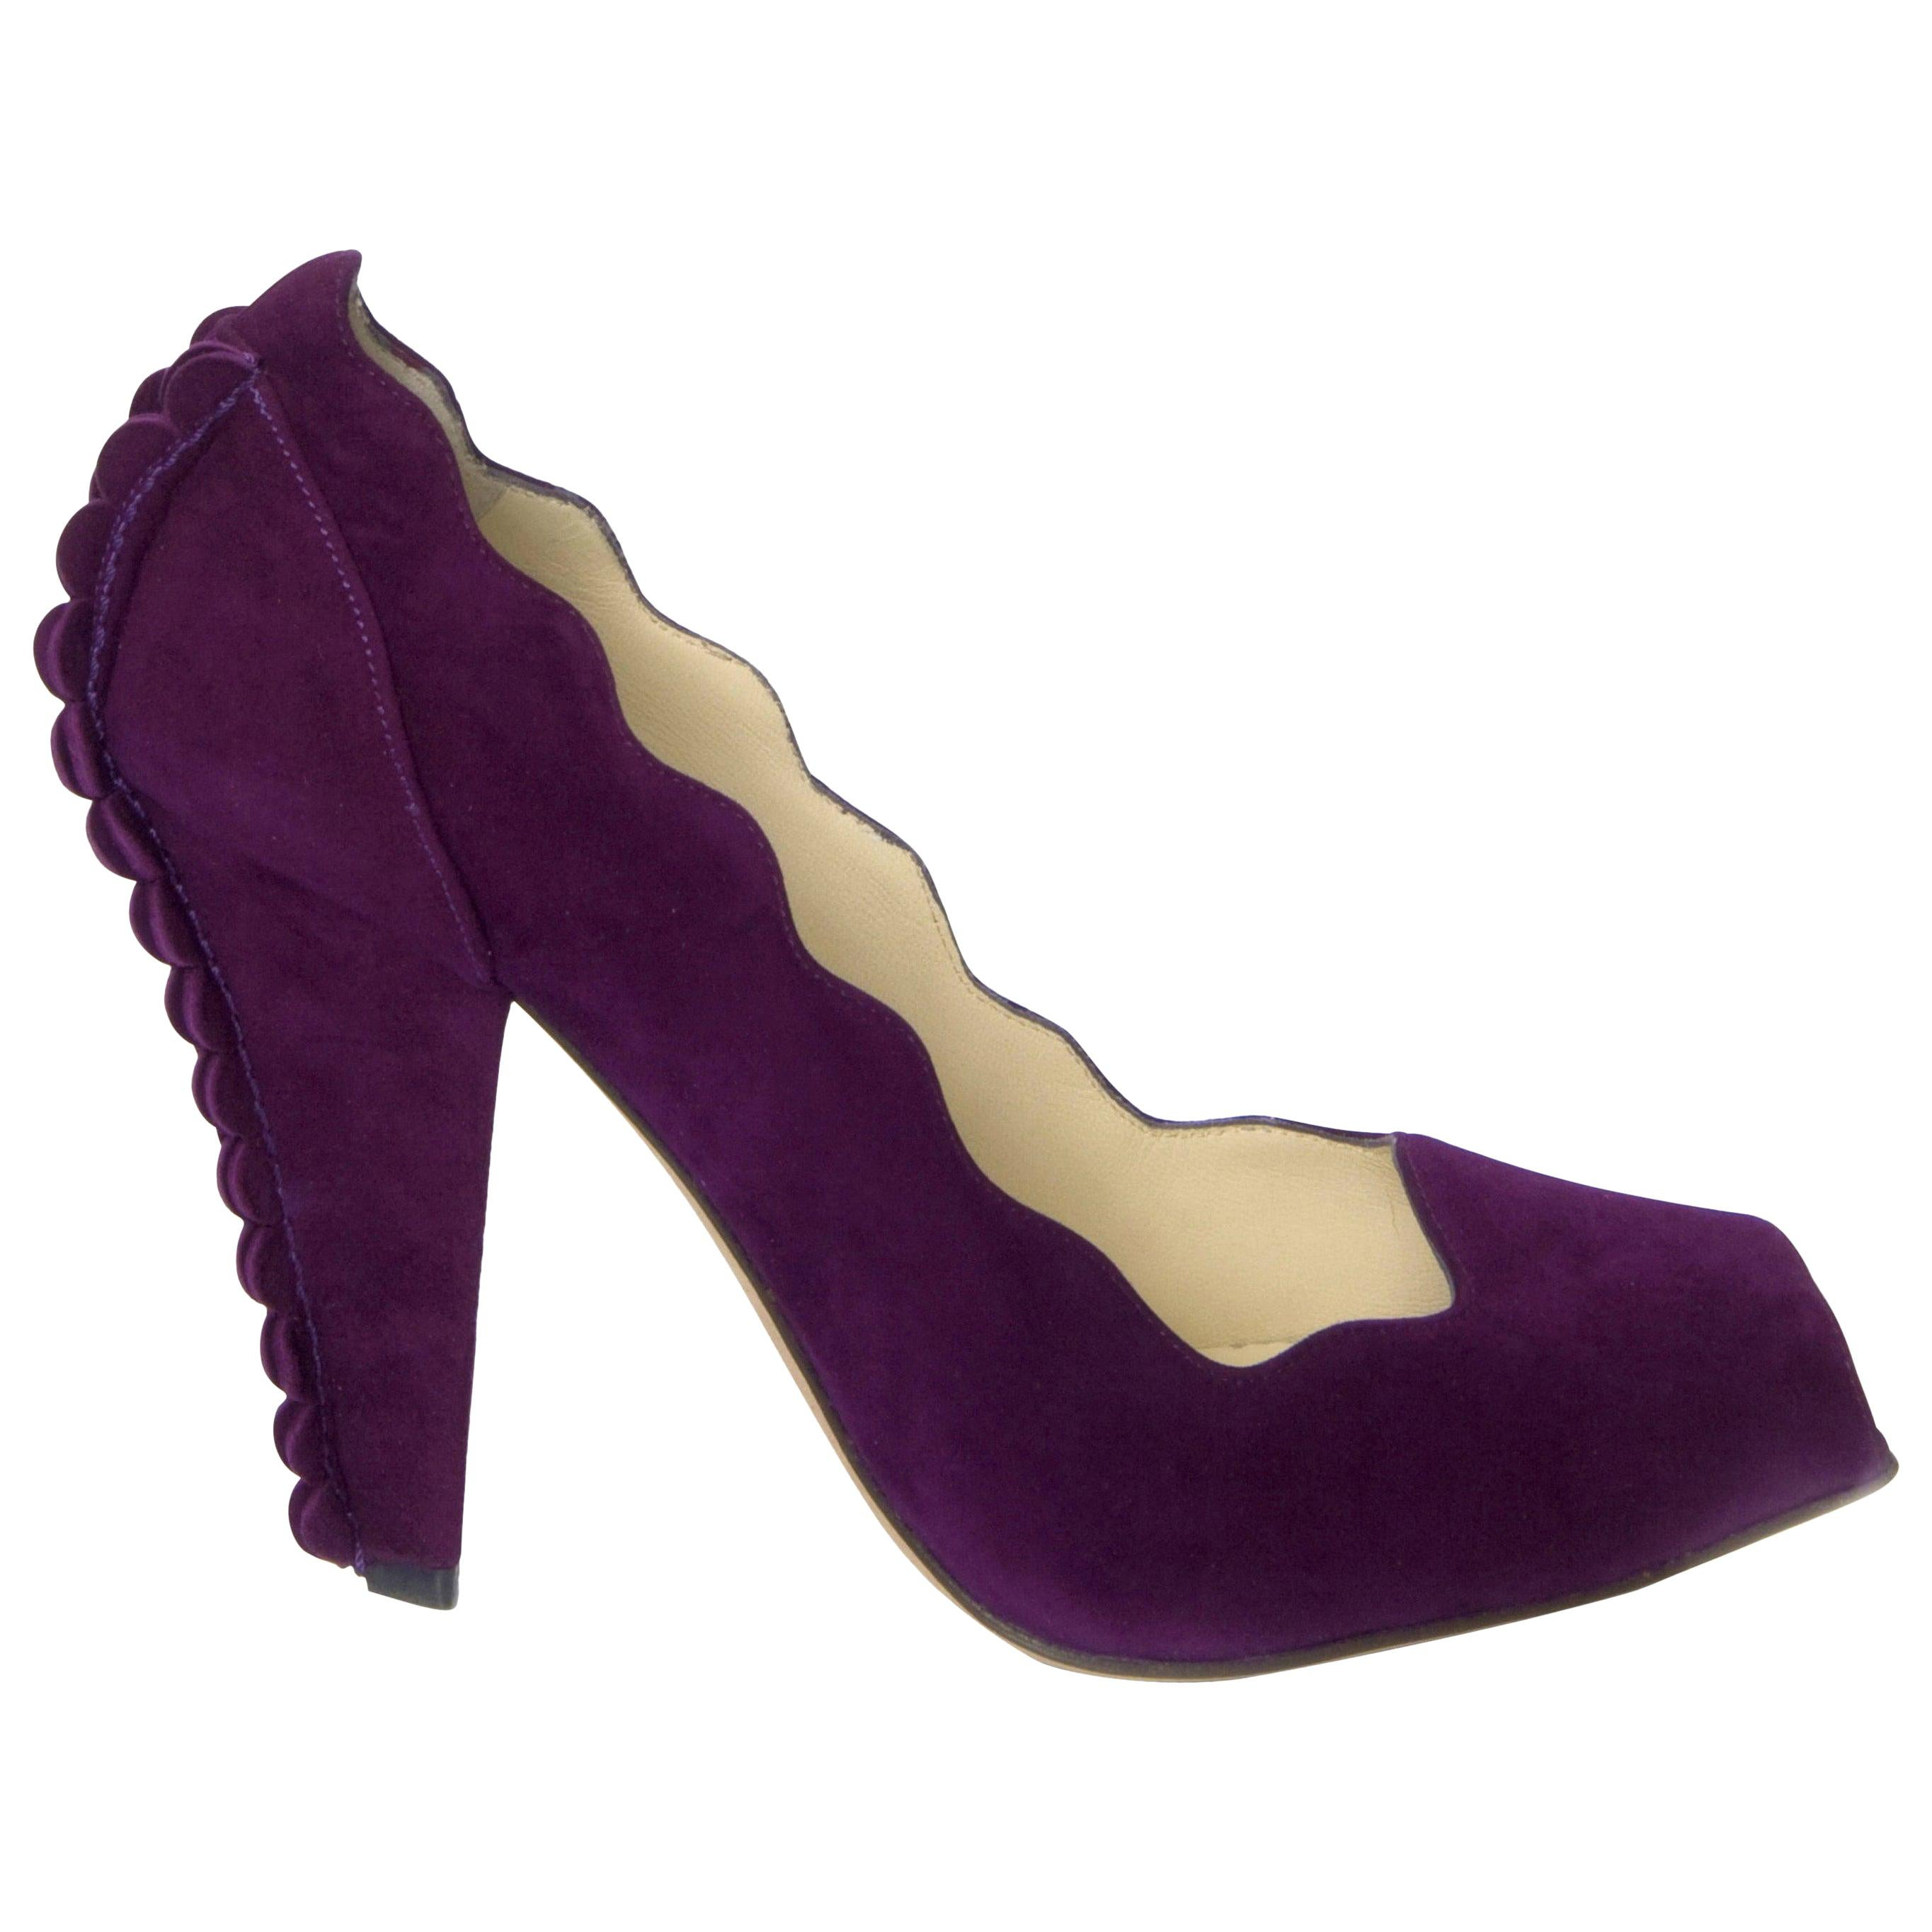 New Tom Ford for Yves Saint Laurent YSL Suede Heels Pumps Sz 38